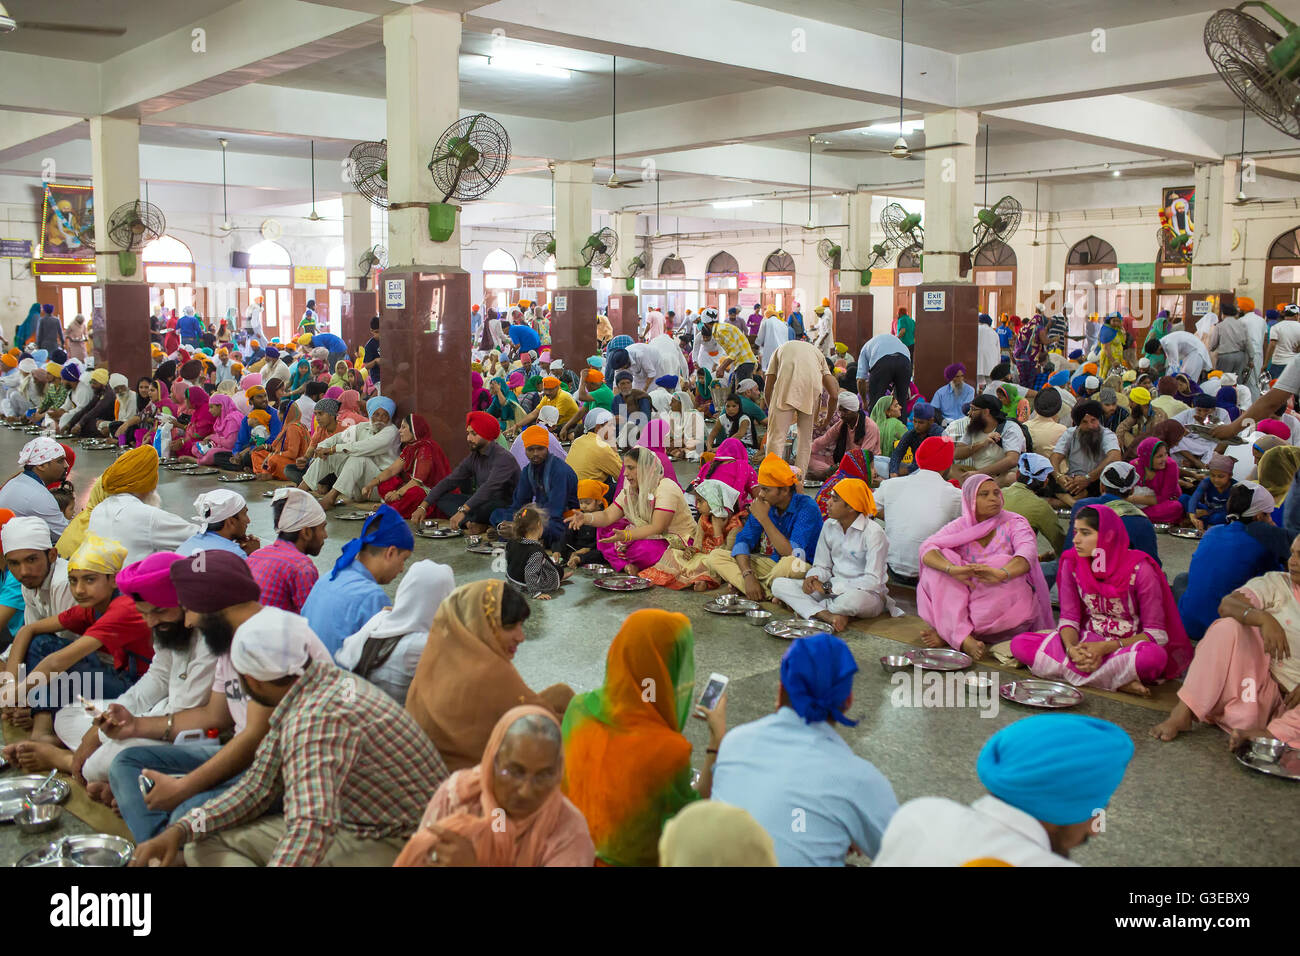 unidentified indian people eating free food in the temple